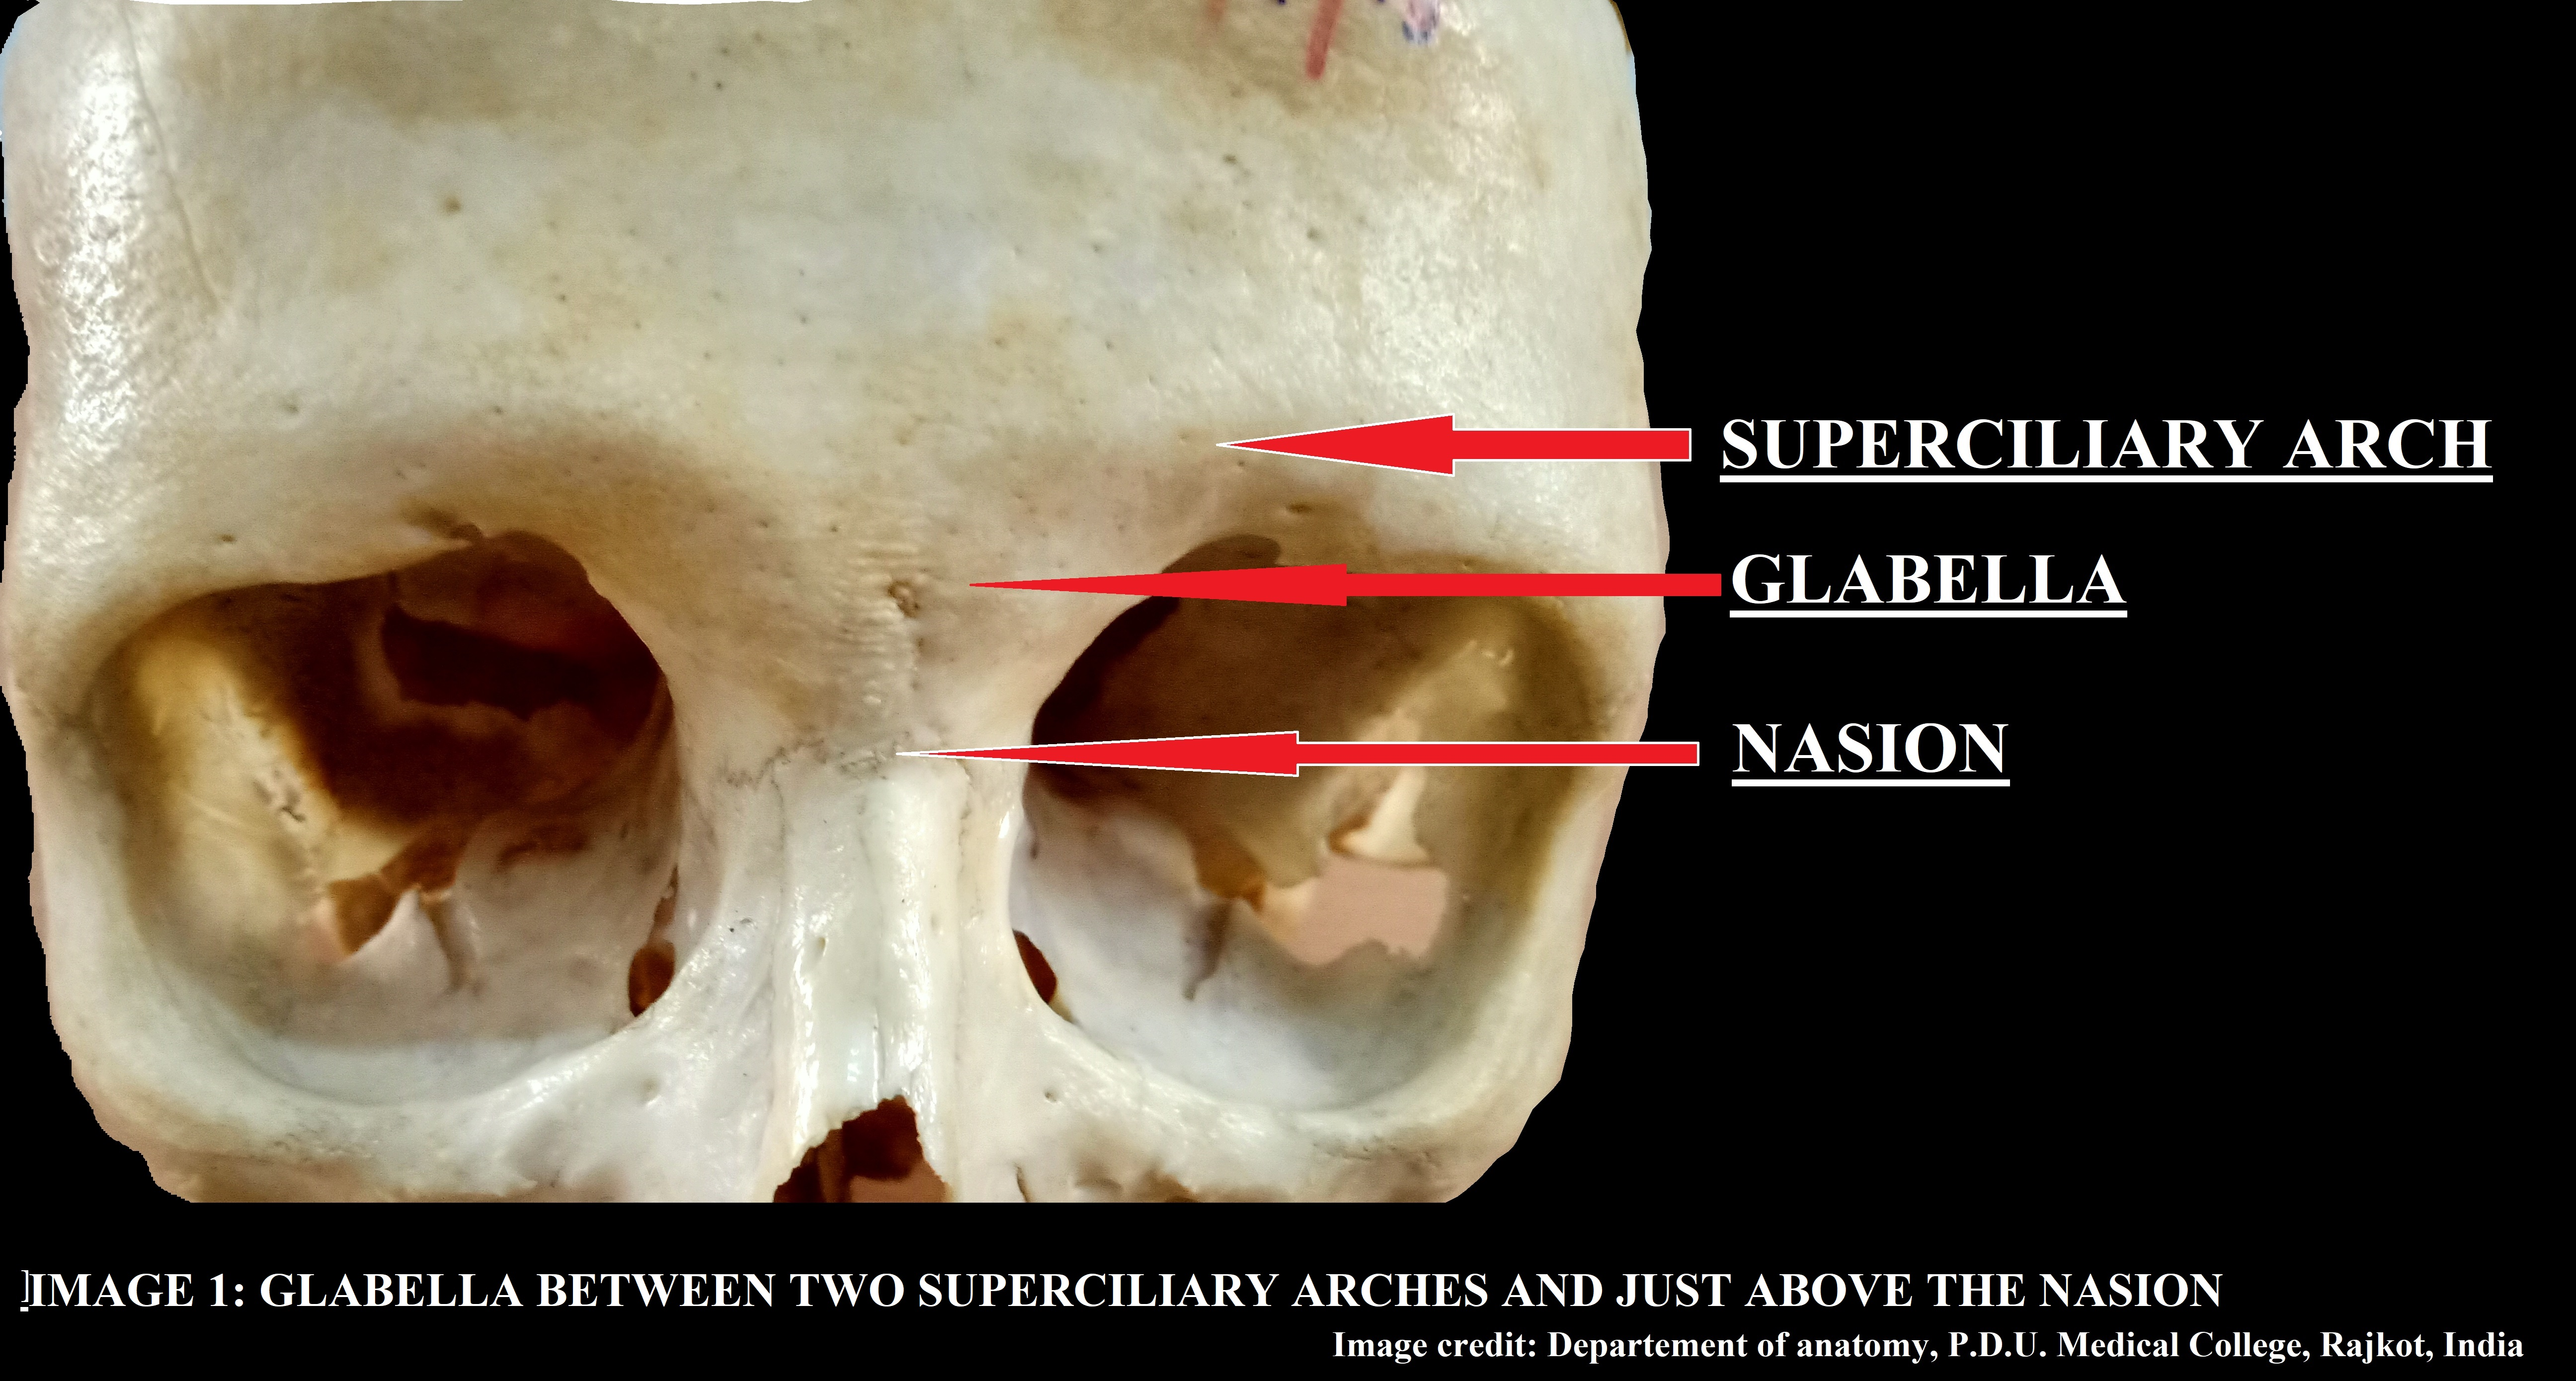 Front of the skull showing Glabella, Superciliary arch and Nasion.